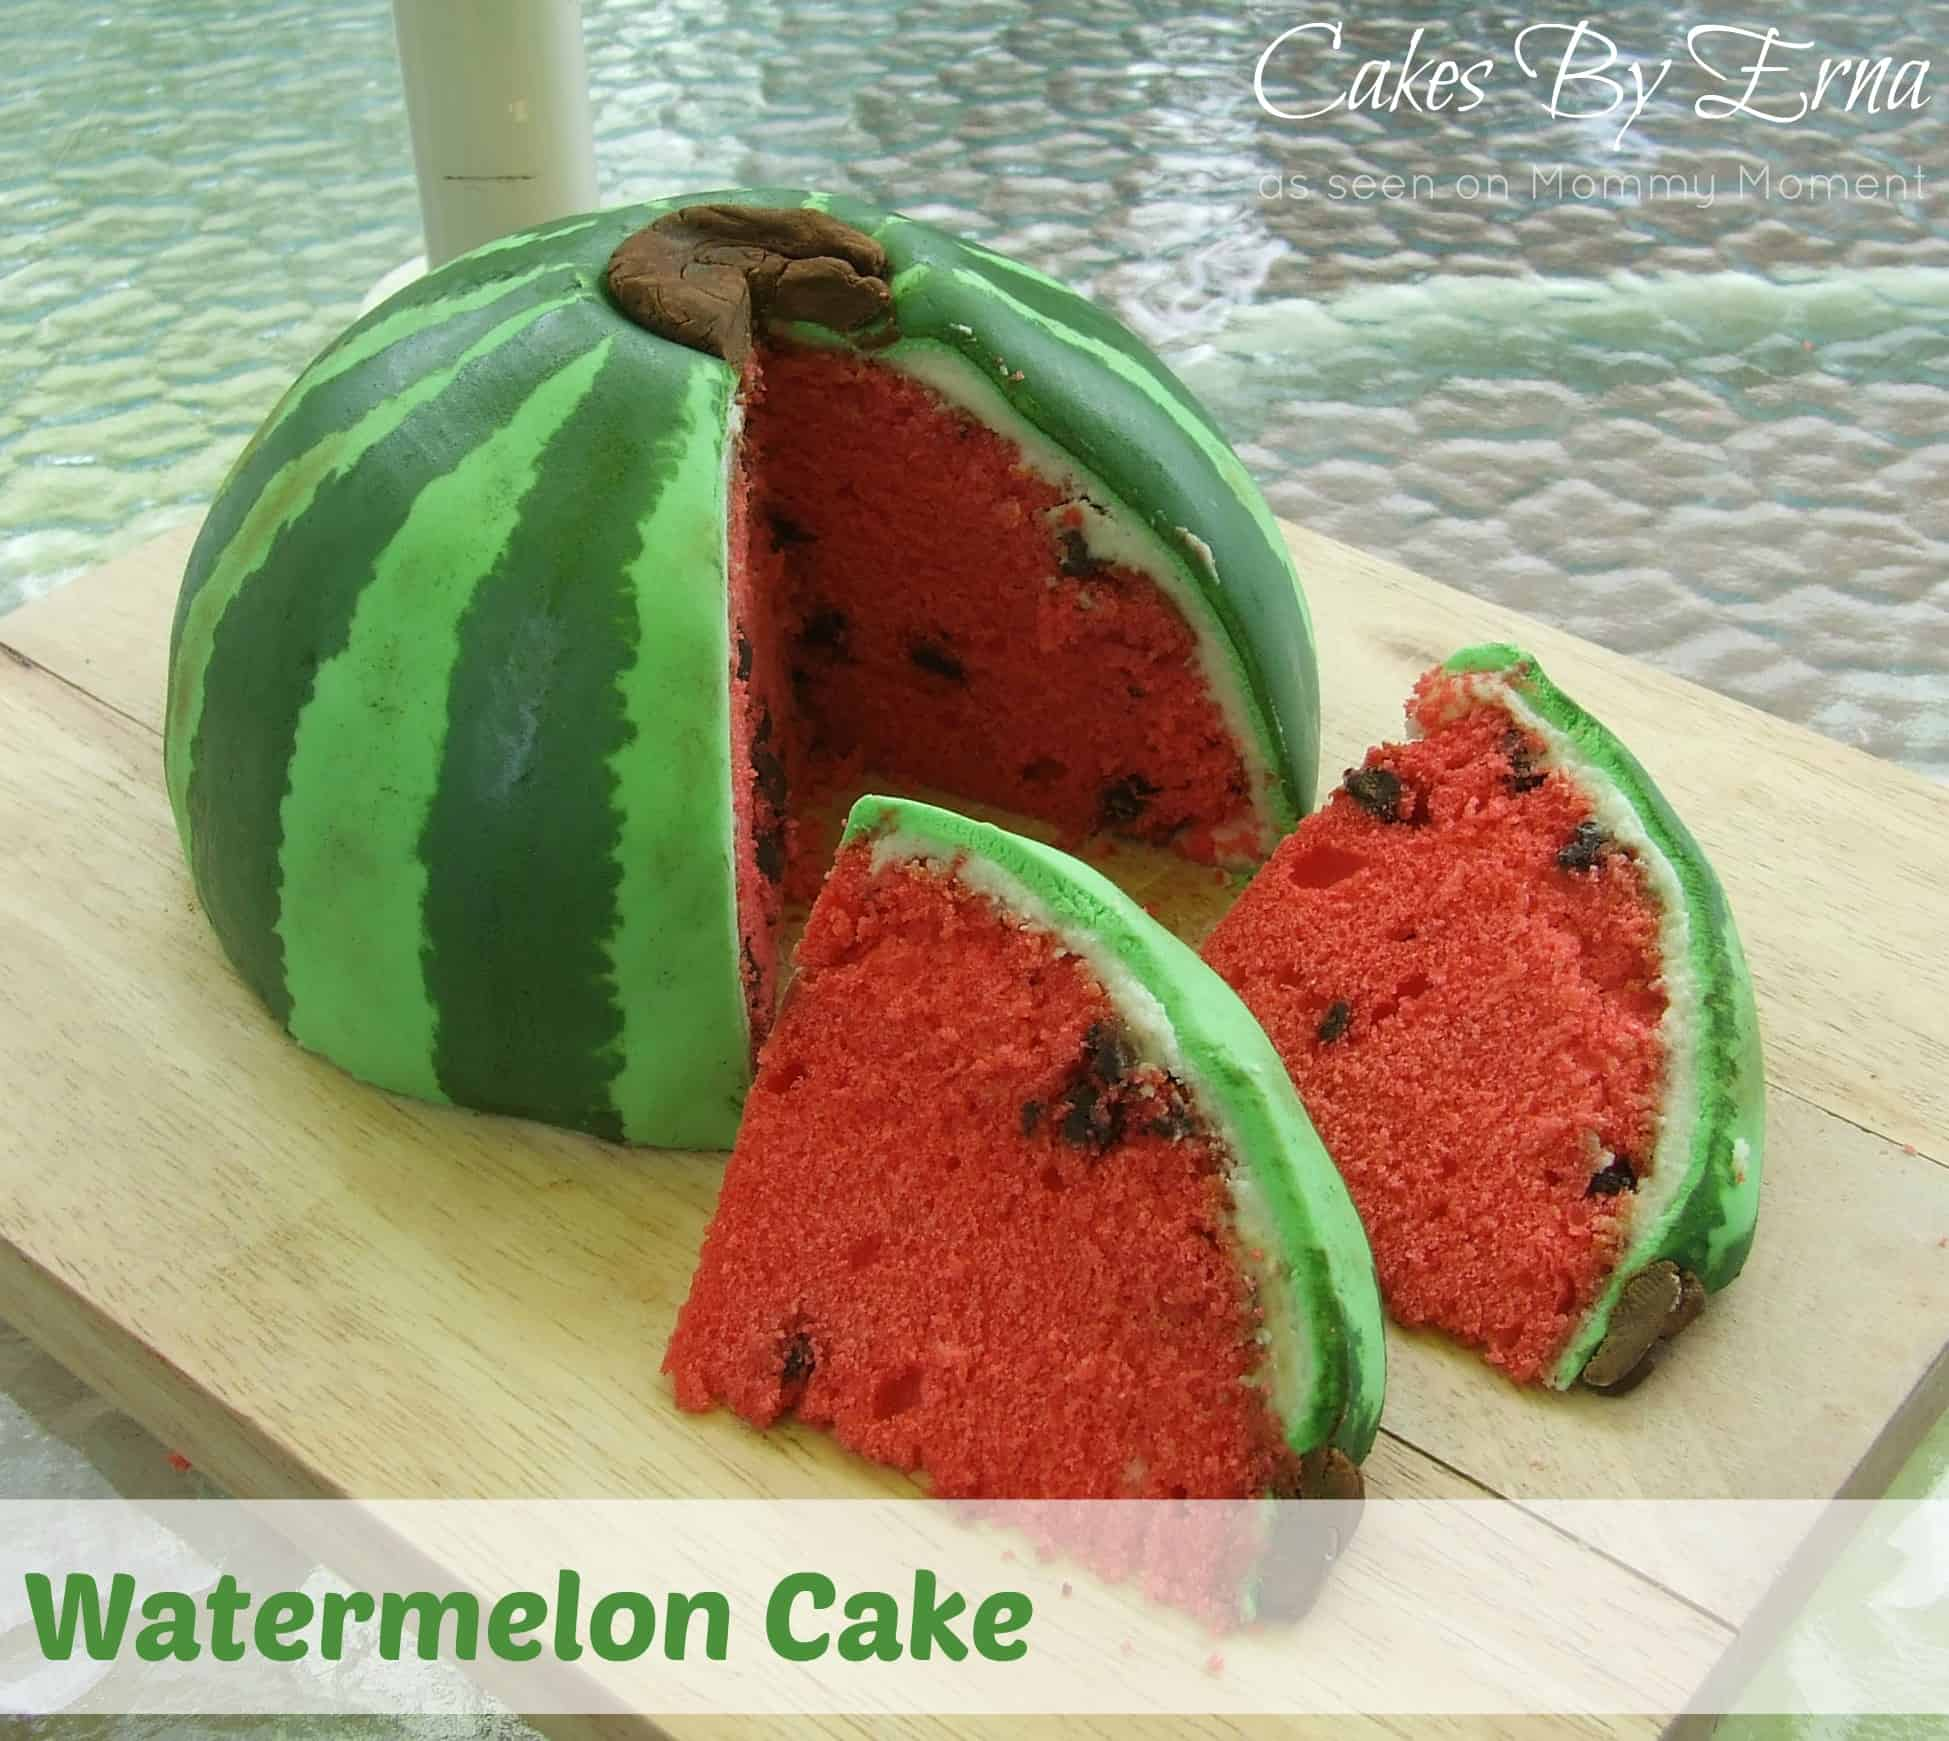 Cut Up Watermelon Cake